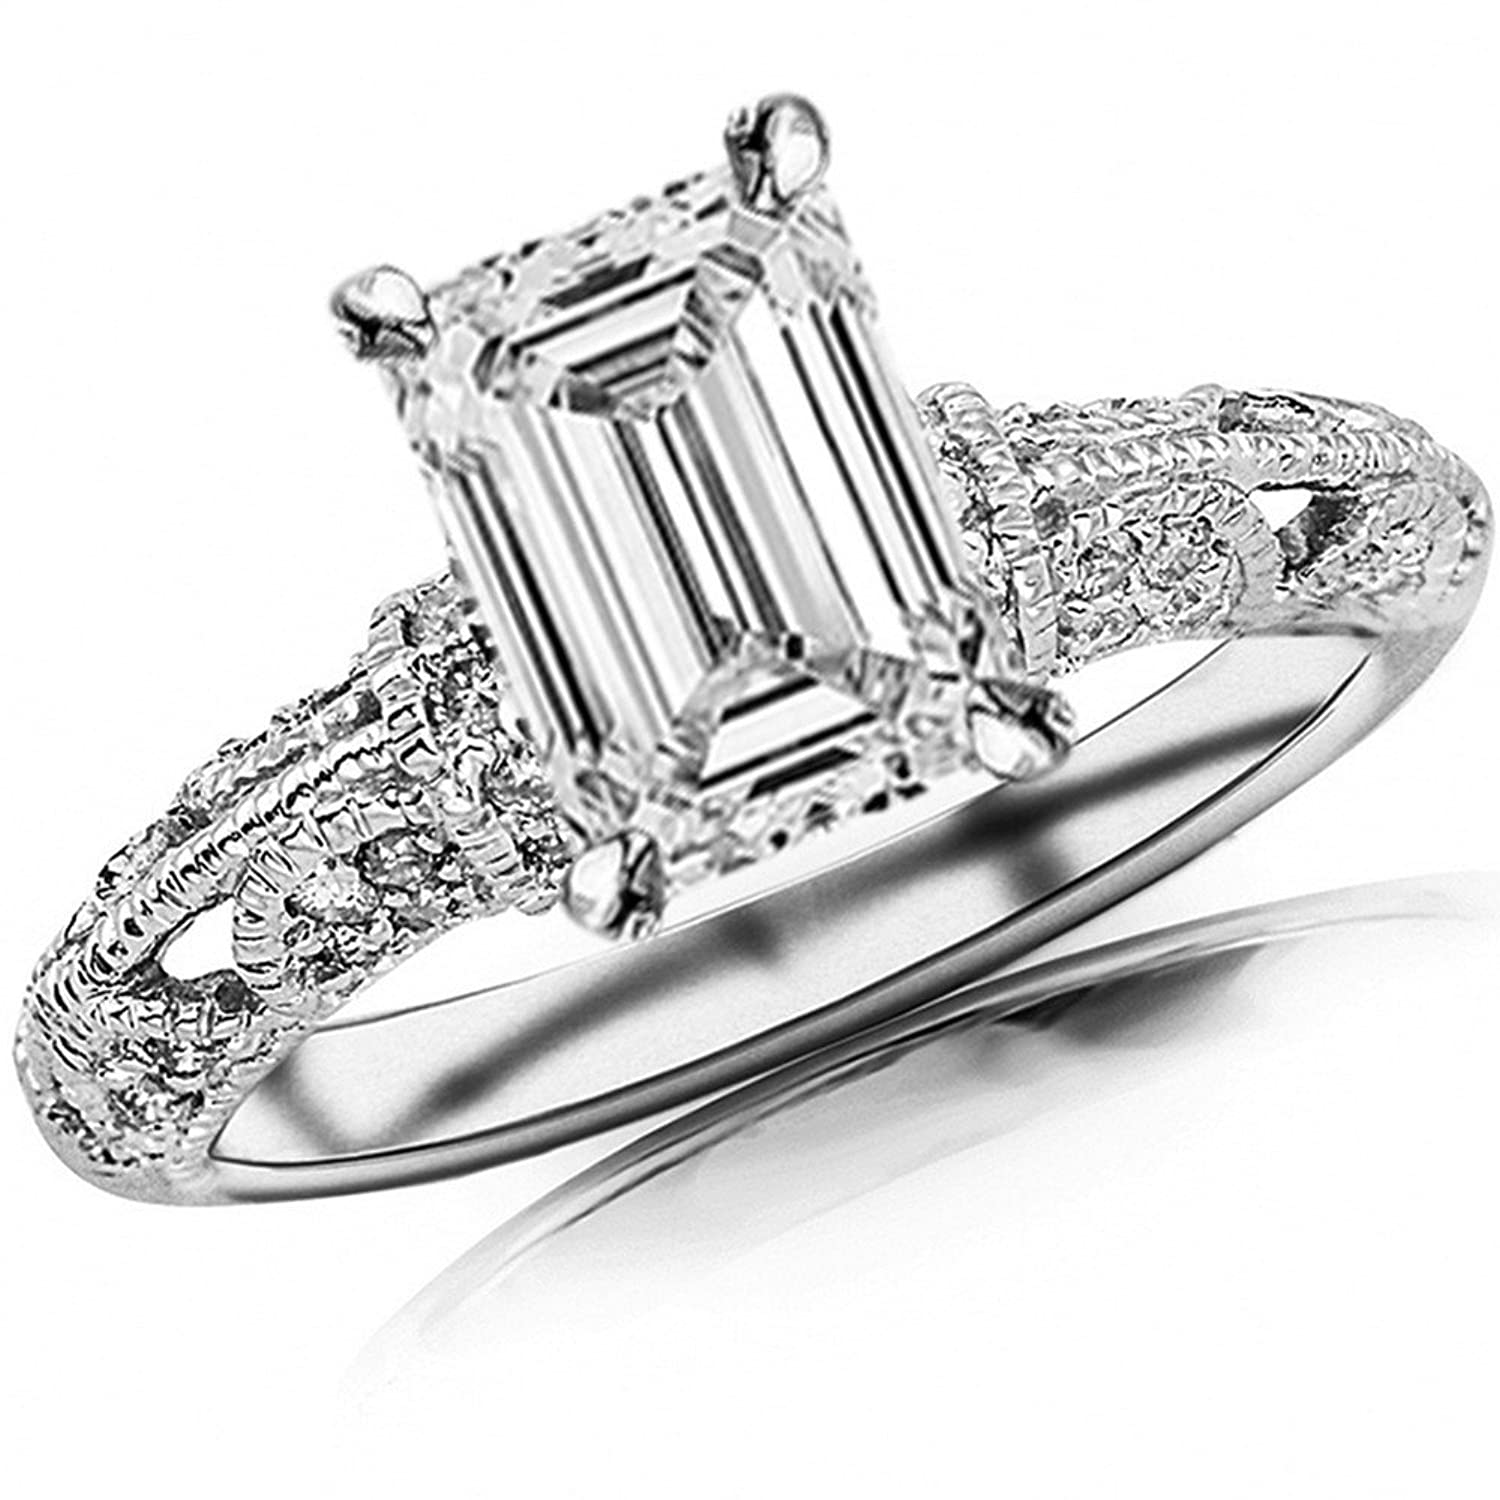 1 CTW Vintage Pave Set Round Diamond Engagement Ring w/ 0.7 Ct Emerald Cut G Color SI1 Clarity Center